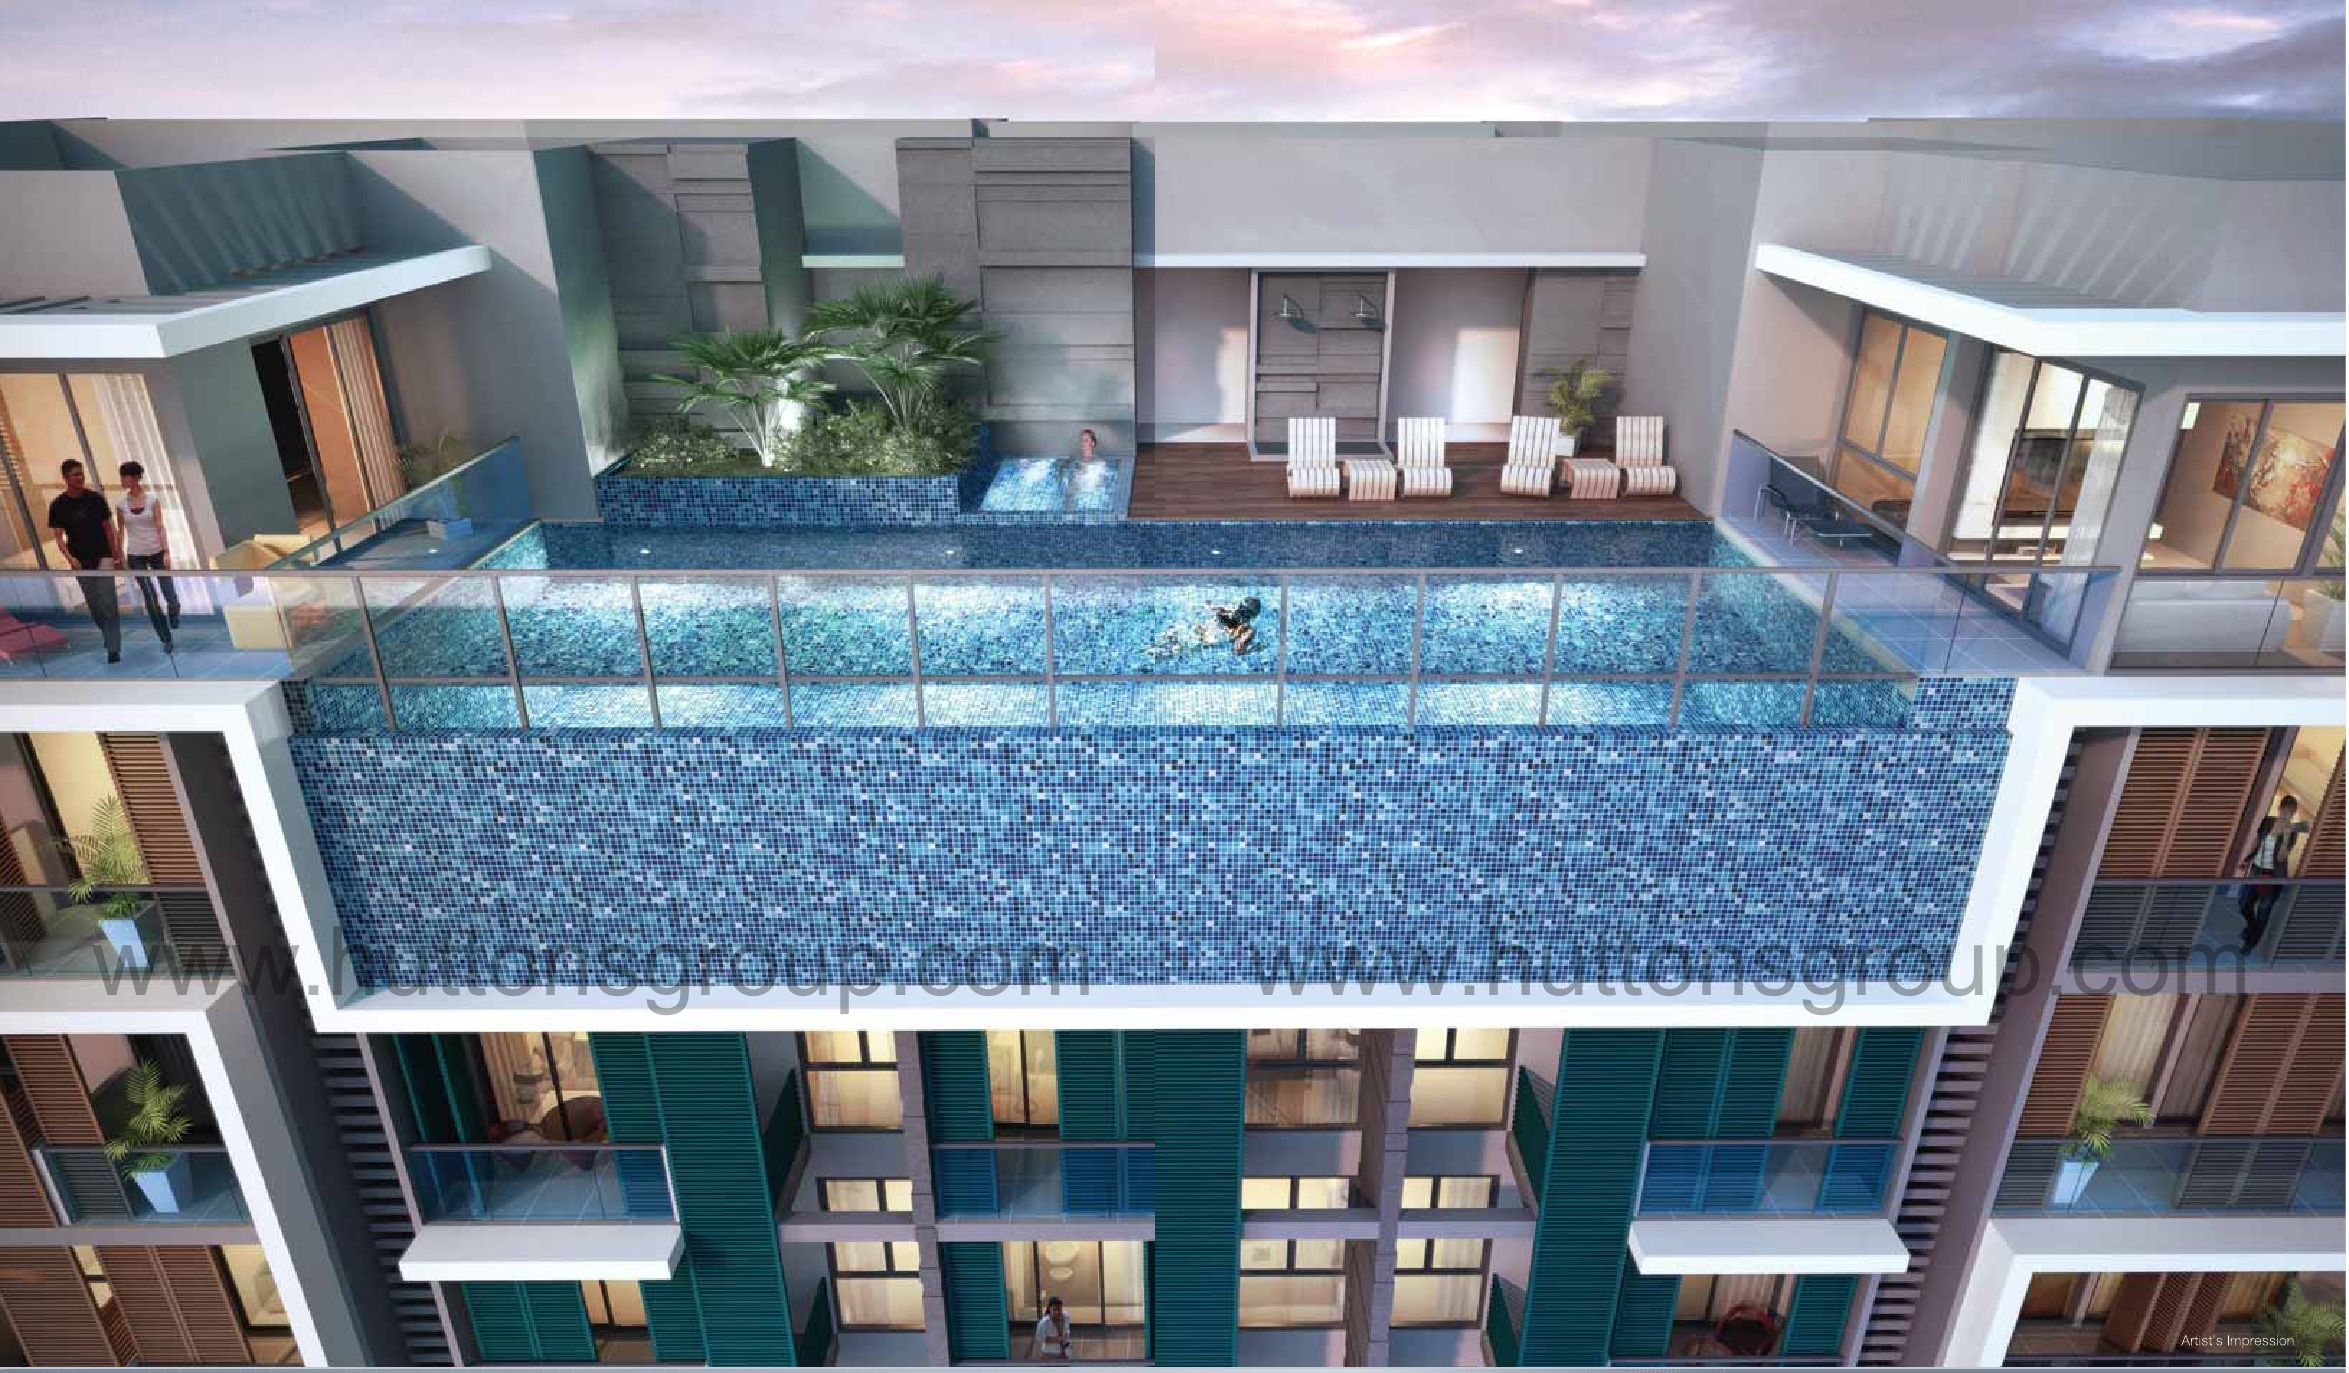 Idyllic-Suites Pool idyllic suites Idyllic Suites Singapore | Showflat Hotline +65 61007122 idyllic suites pool